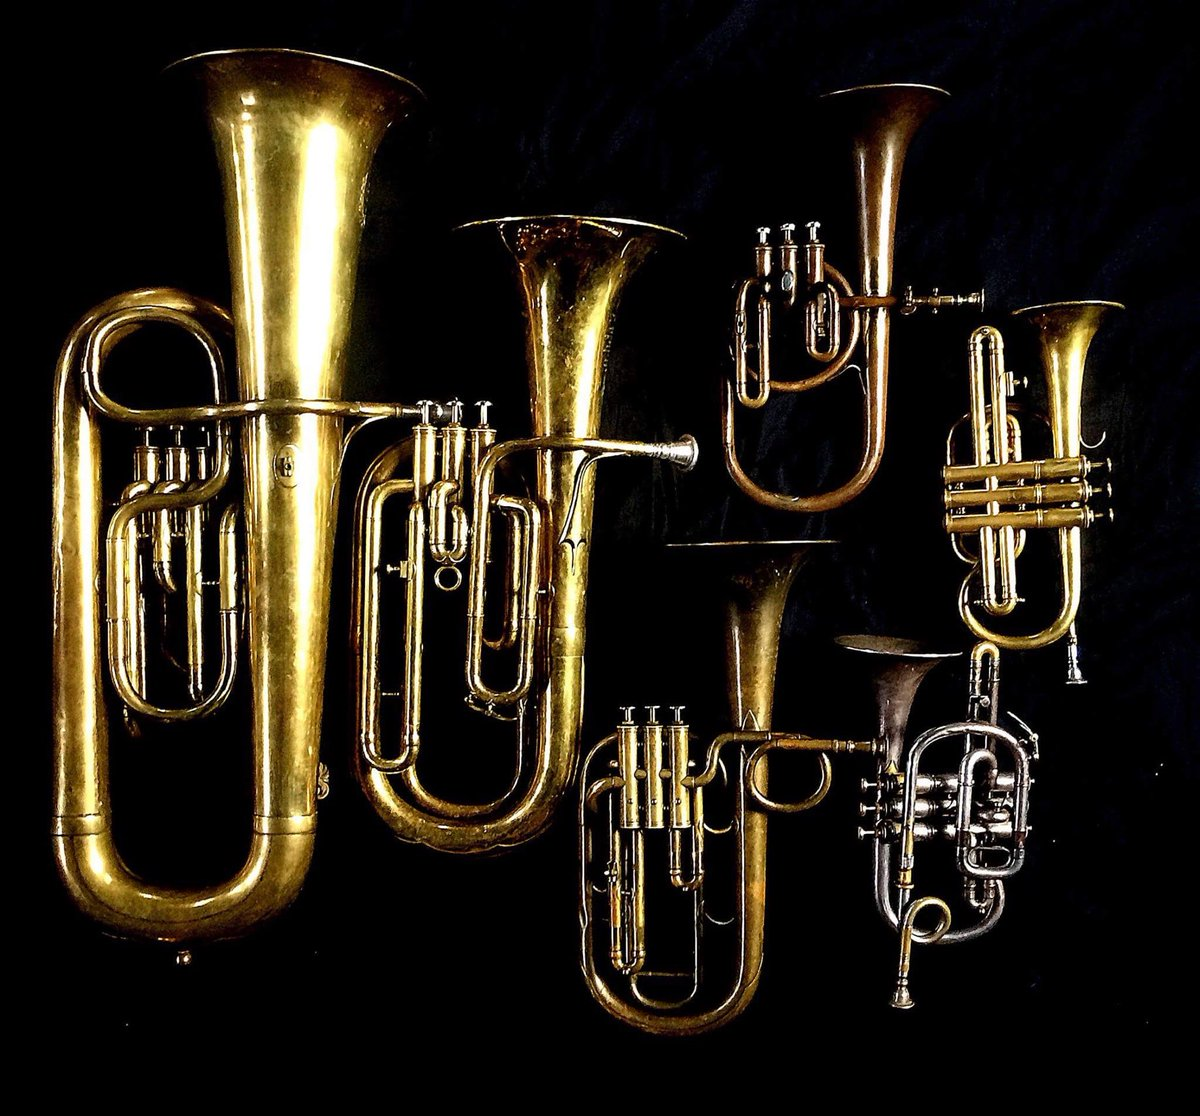 Left to Right:   Contrabass saxhorn in E-flat   by E. Daniel (7167, Marseille, c. 1850),     Baritone saxhorn in B-flat     by Couesnon (44139, 94 Rue D'angouleme Exposition Universelle De Paris, 1900)  ,     Tenor saxhorn in F/E flat/D     by Antoine Courtois (Paris, c. 1855), sold by Arthur Chappell (London),        Contralto saxhorn in B-flat     by J. Grass (32 Rue des Ponts de Comines, Lille, est. 1868.,   Cornet in C/B-flat     by Henry Distin New American Model (9580, Williamsport, PA, c. 1895) ,  Cornet in B-flat/A   by F. Besson (44292, 96 Rue D'angouleme, Paris c. 1892).